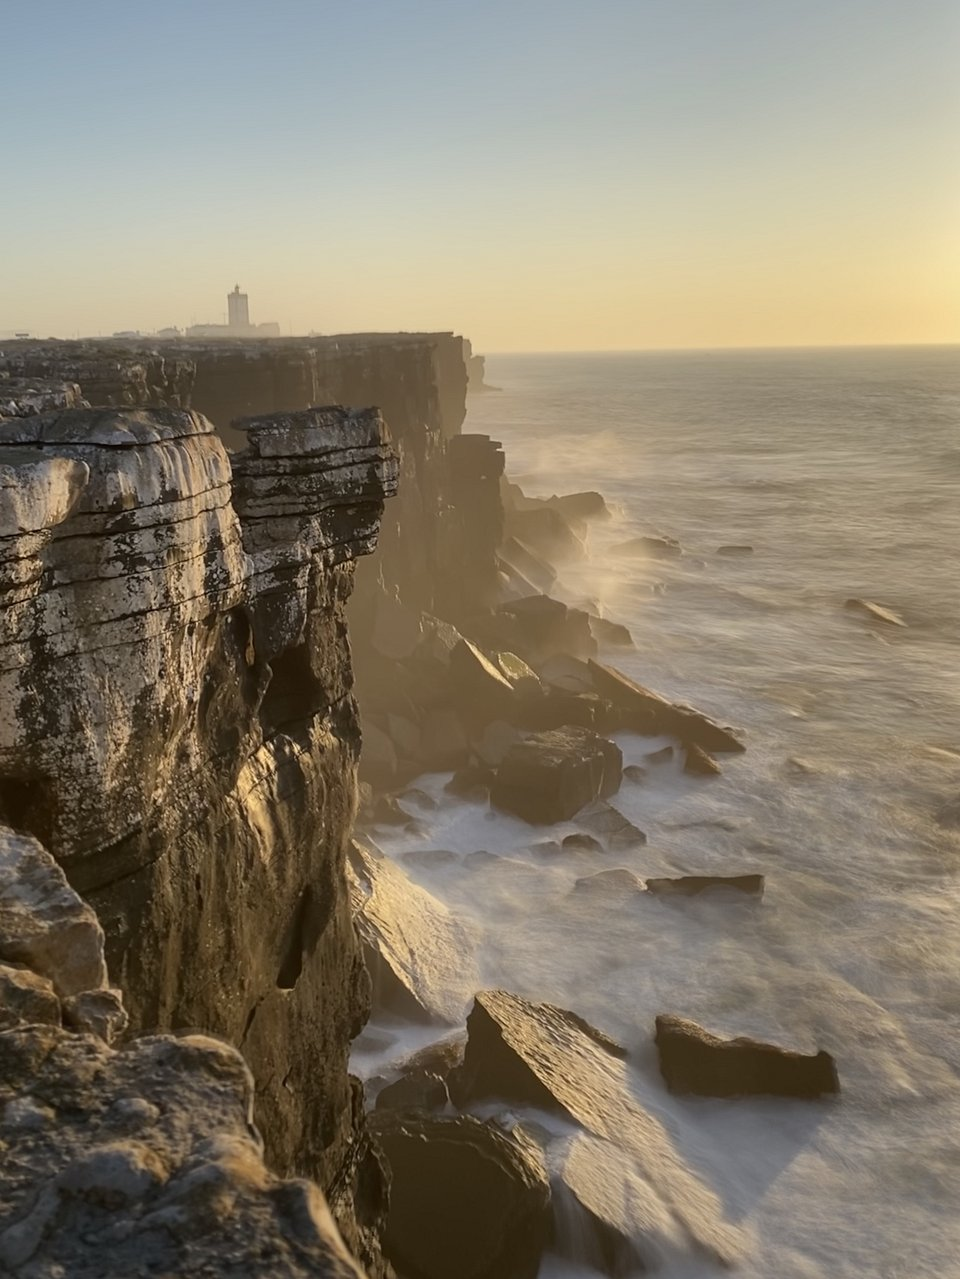 Location: Peniche, Portugal